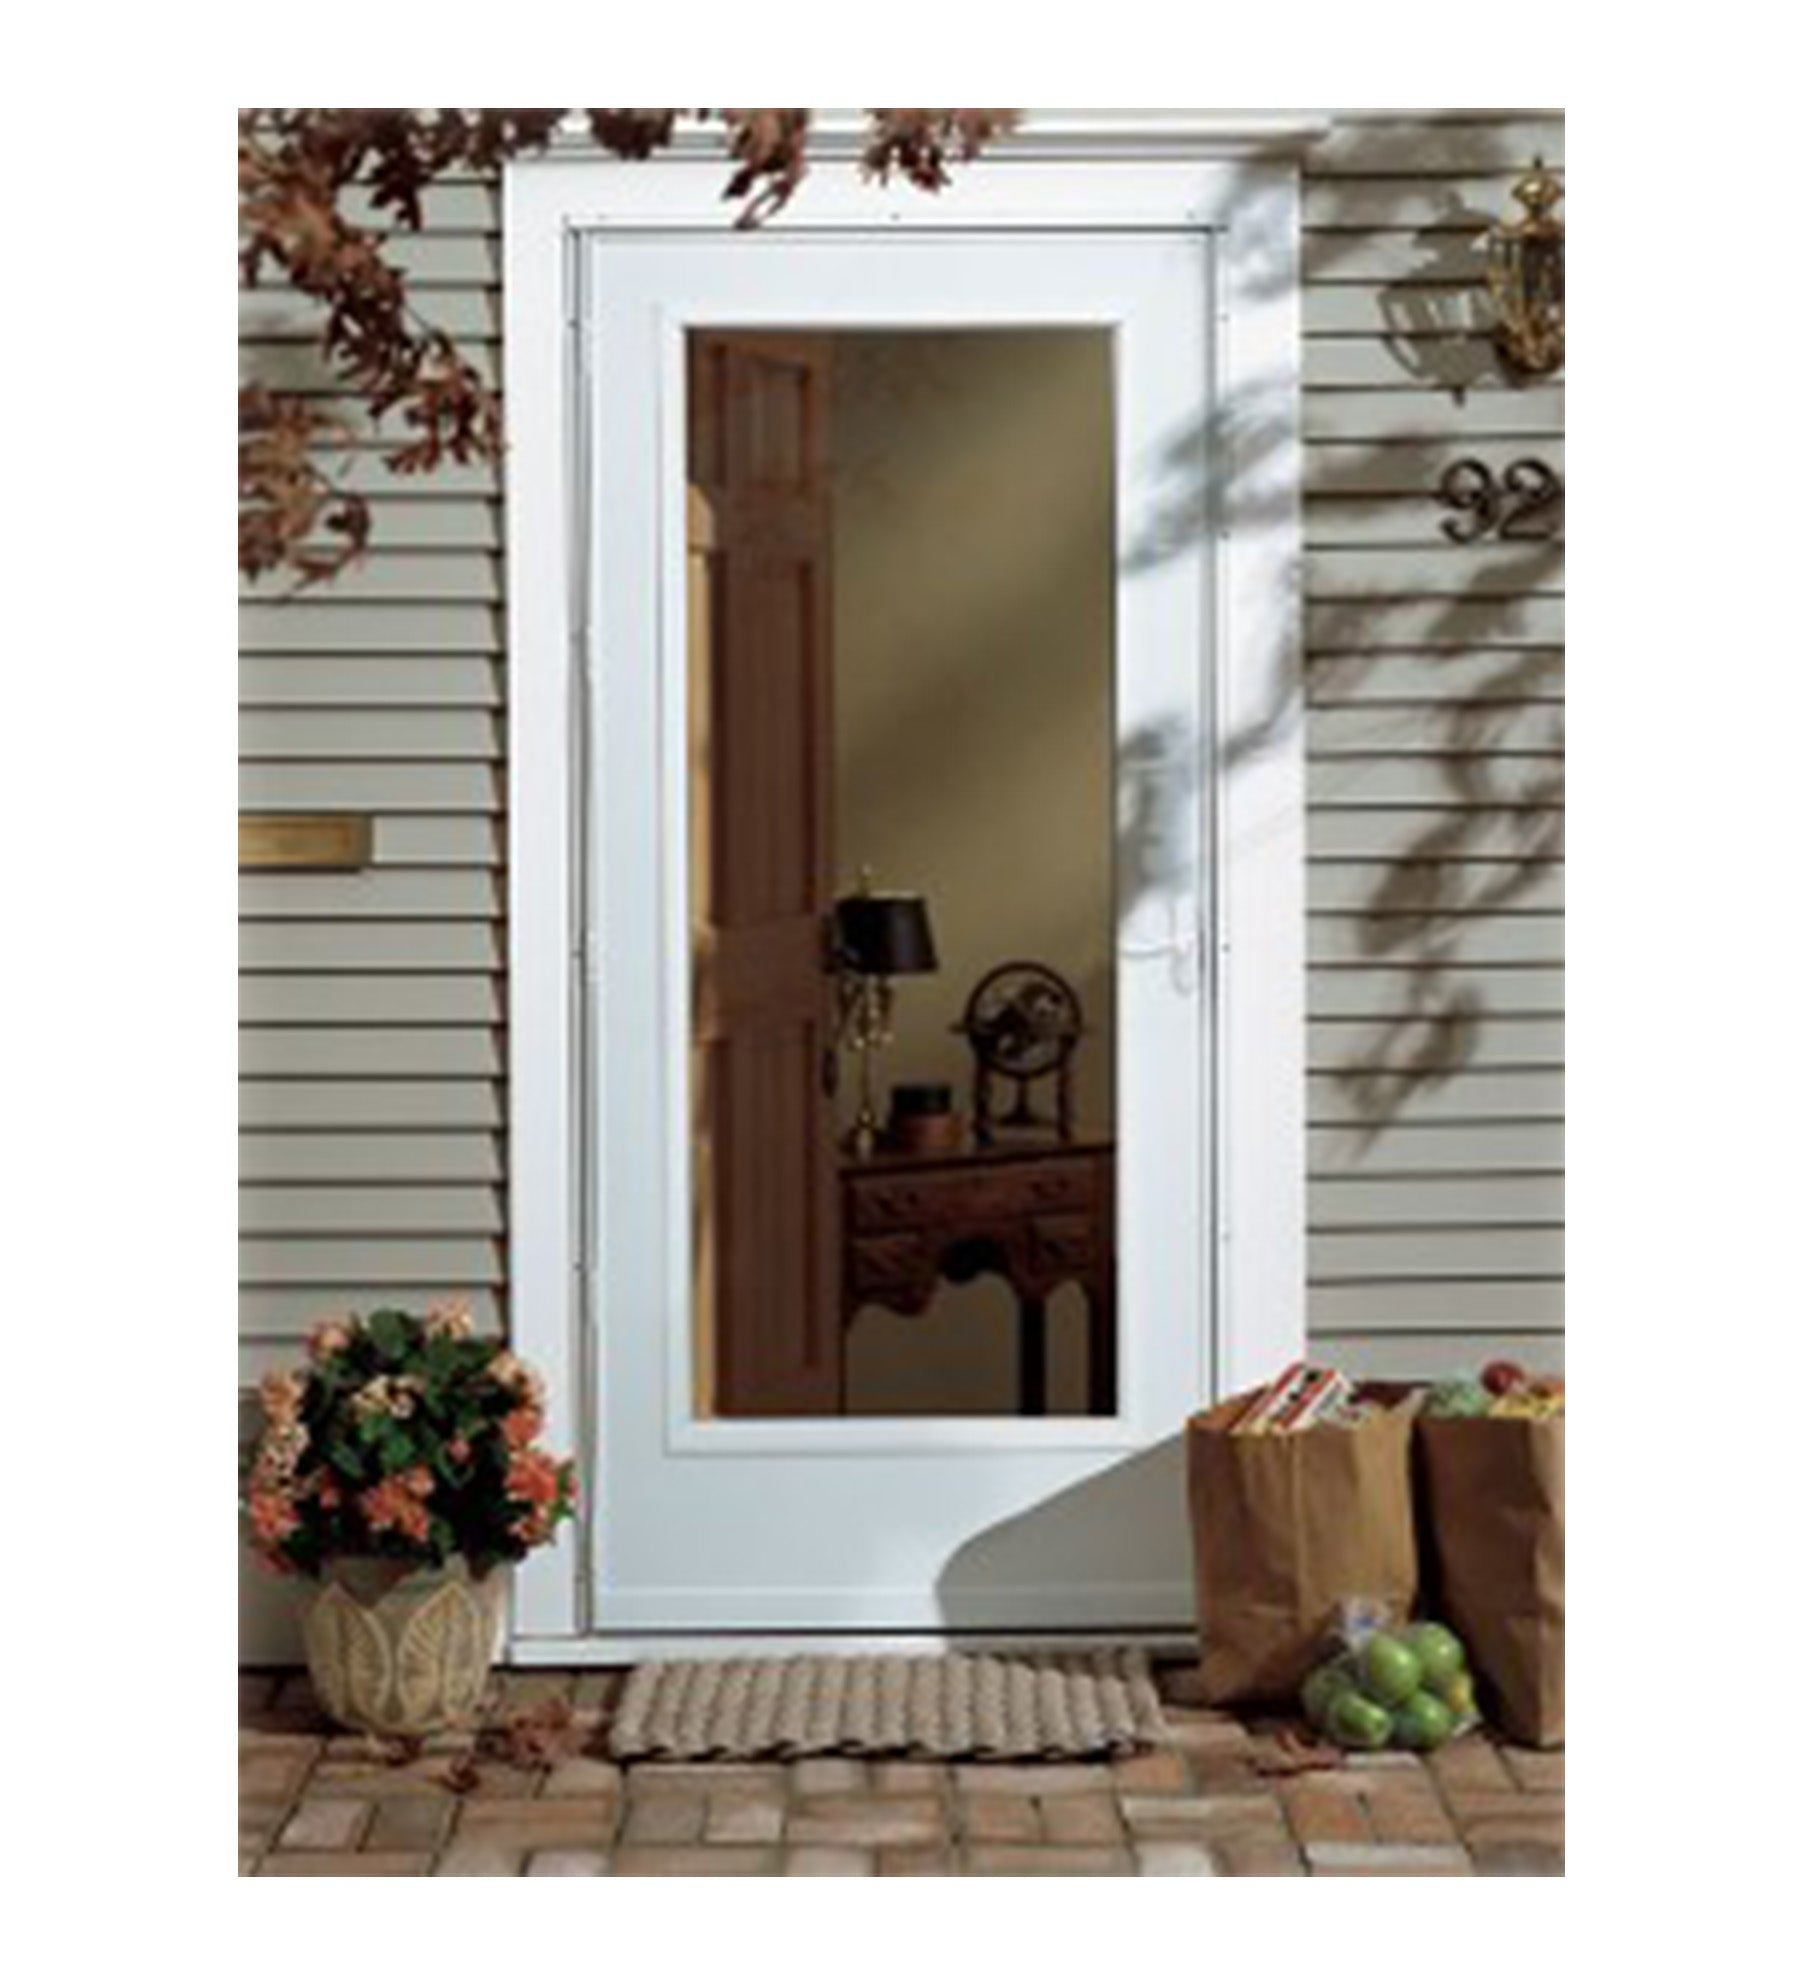 INSTALLED Larson Life-Core Strom Door w/ Hardware         STARTING $572.99